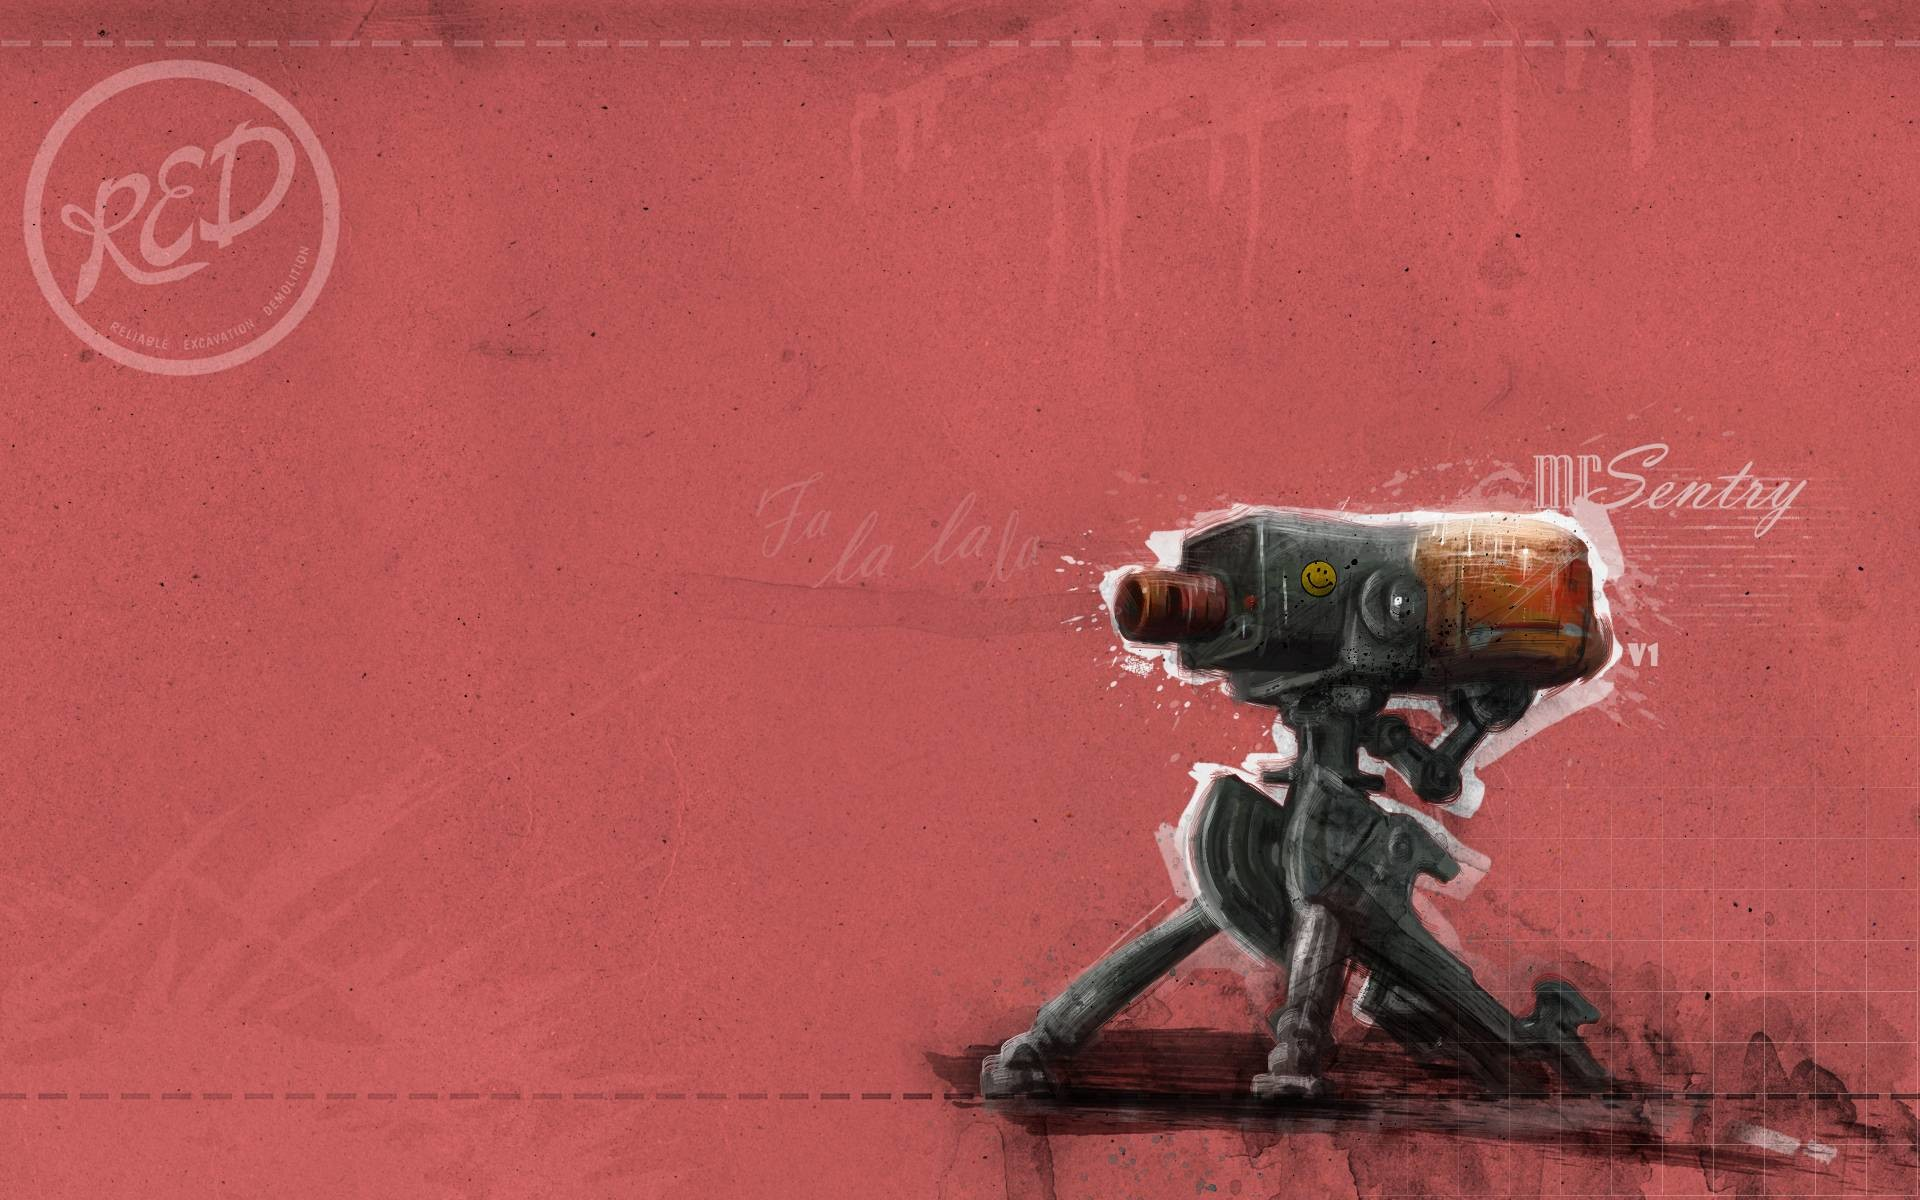 Team Fortress 2 Wallpapers – Full HD wallpaper search